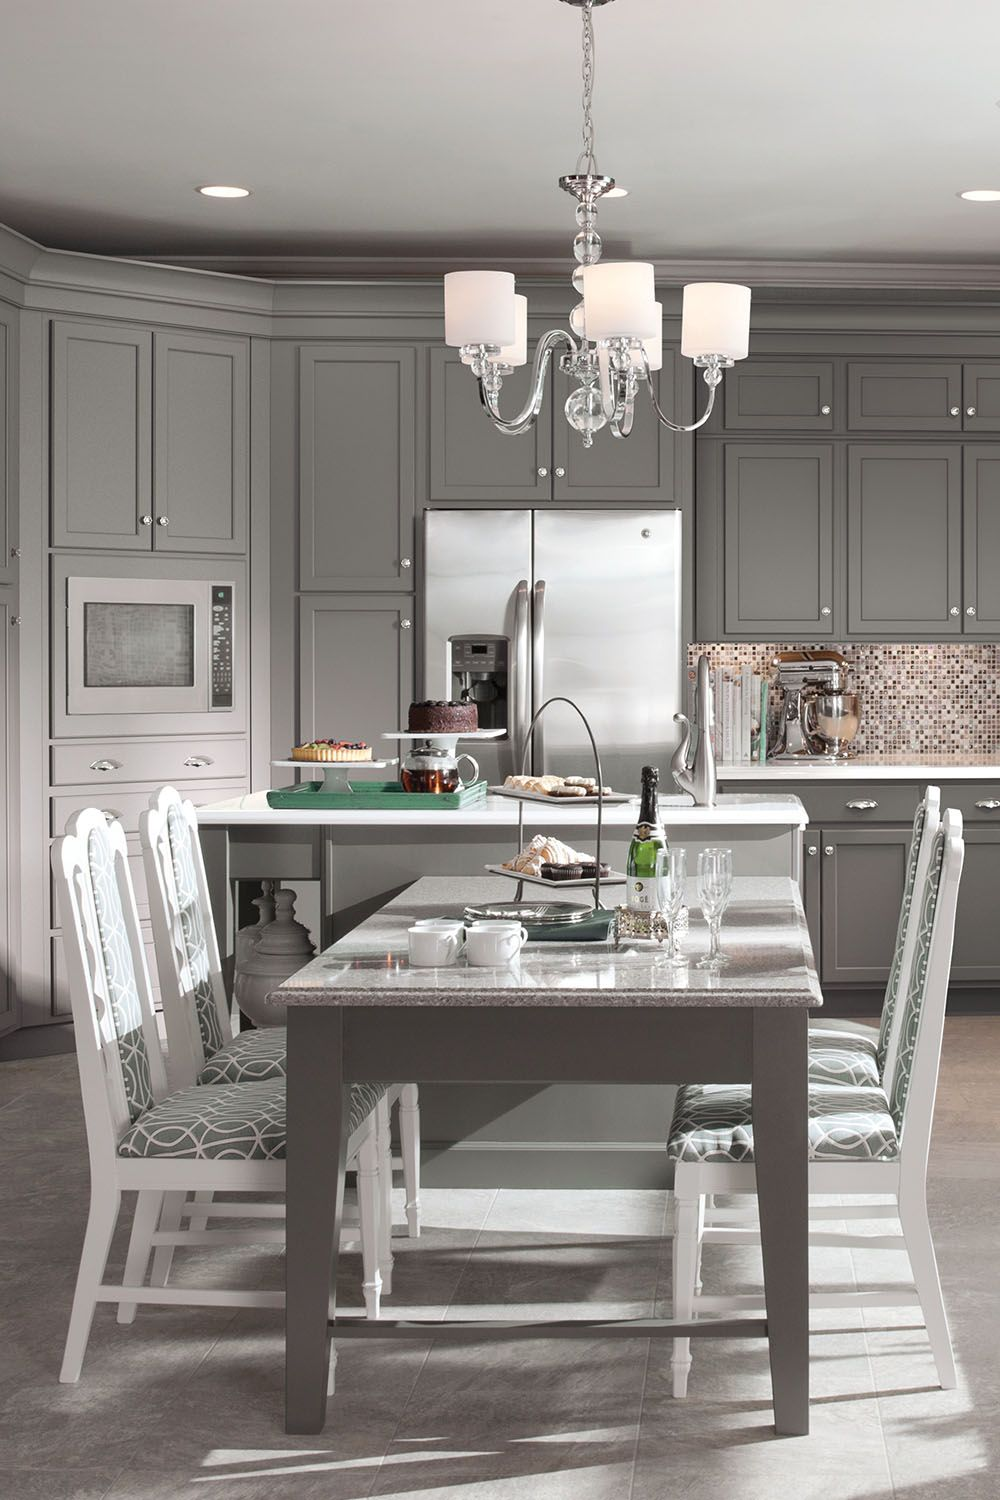 10x10 Girls Bedroom: Is It Time For A Kitchen Refresh? Cool Tones Go A Long Way